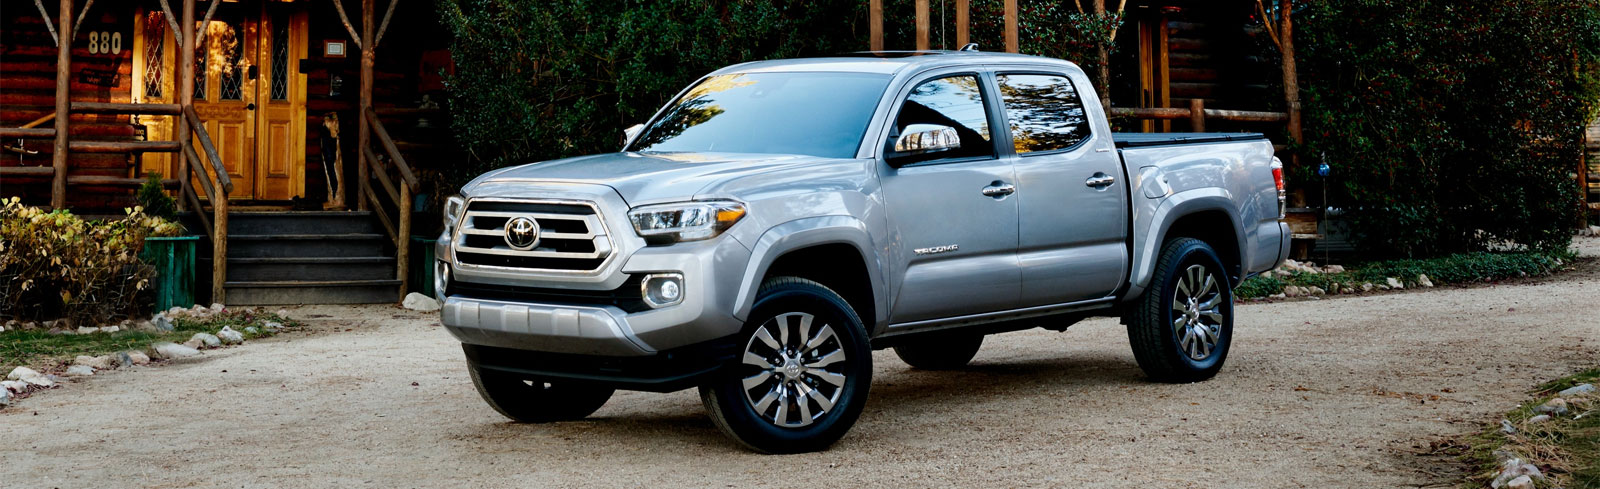 2020 Toyota Tacoma Trucks in Oklahoma City, near Edmond, OK